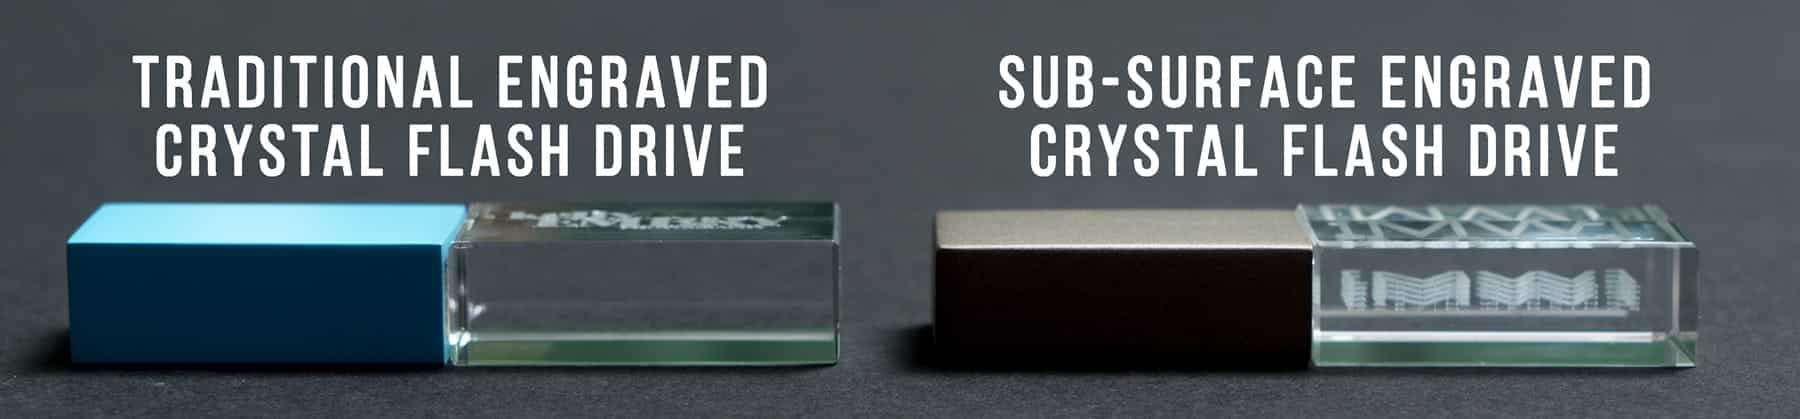 sub-surface engraved crystal flash drives photoflashdrive vs traditional flash drive